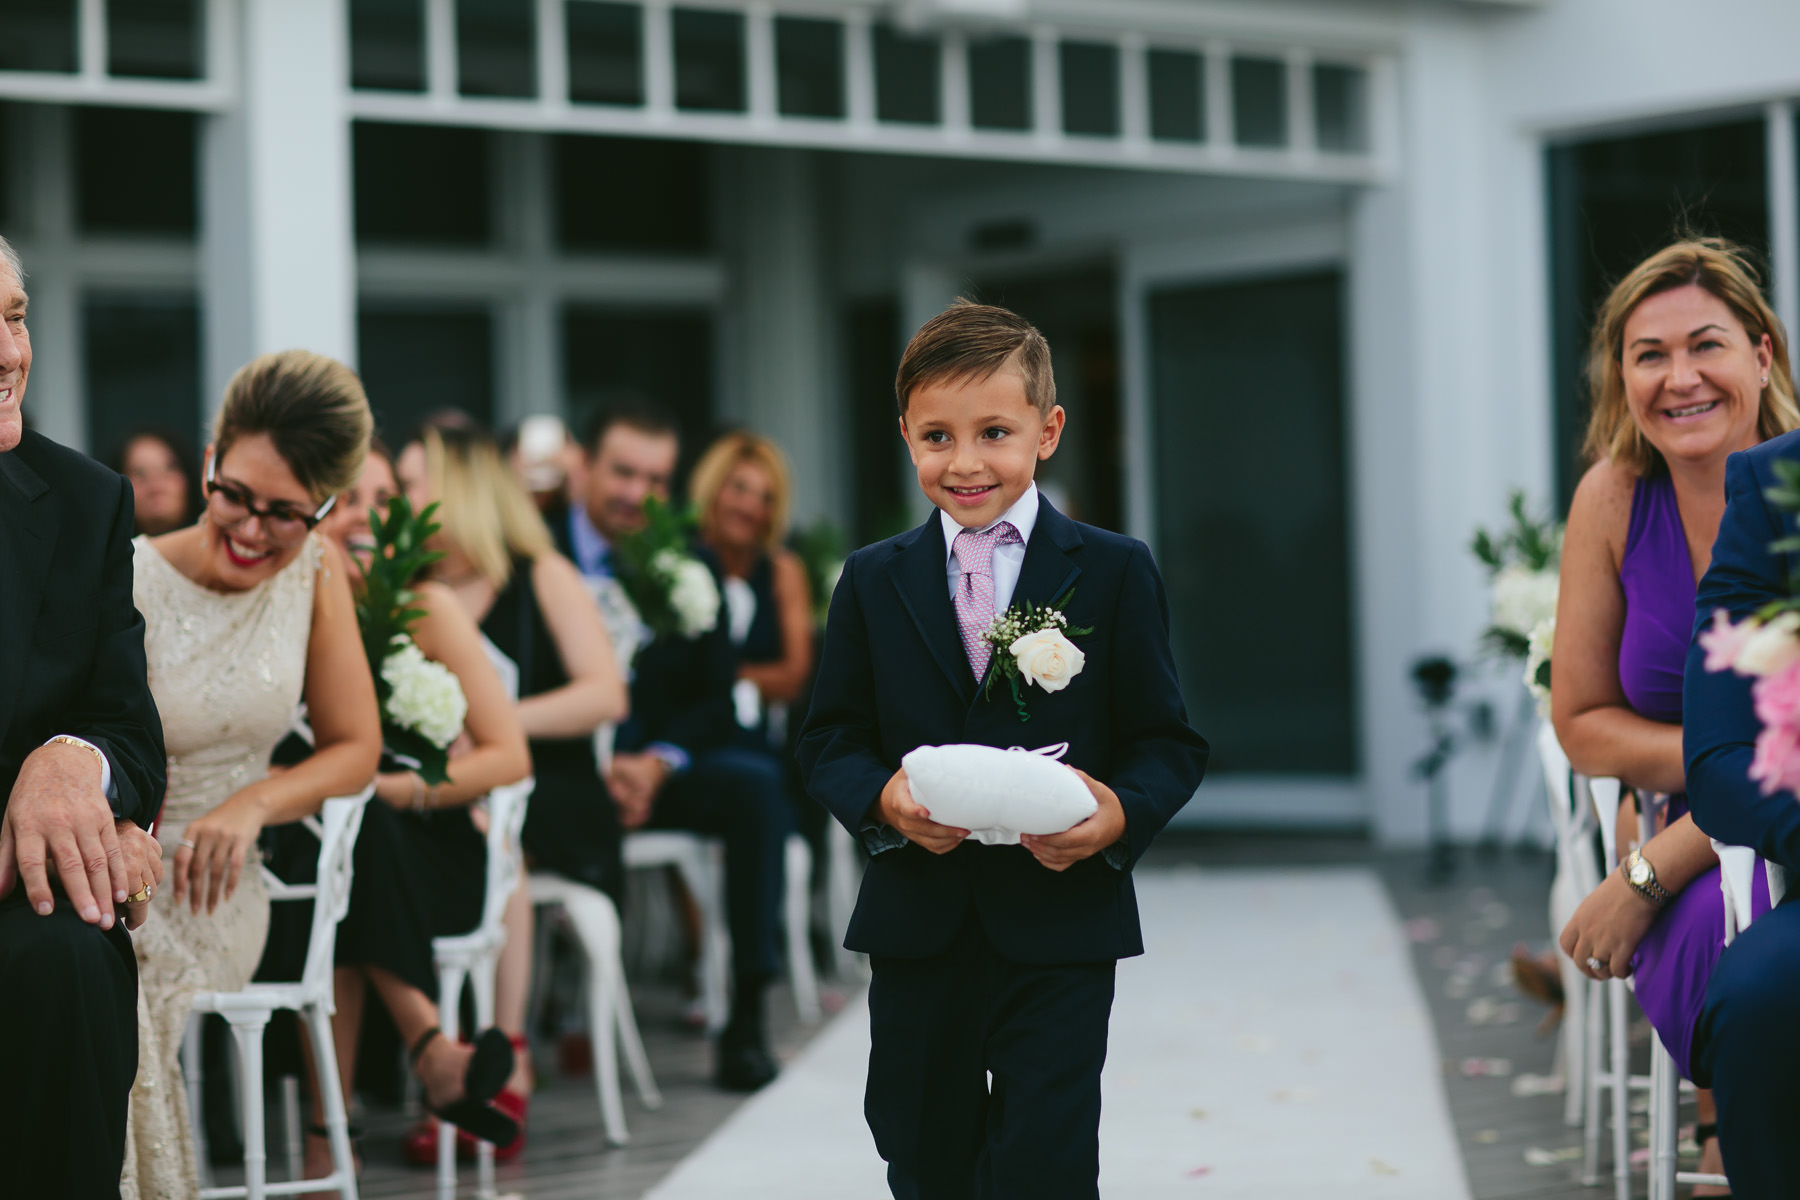 ring-bearer-wedding-ceremony-tiny-house-photo-destination-moments.jpg